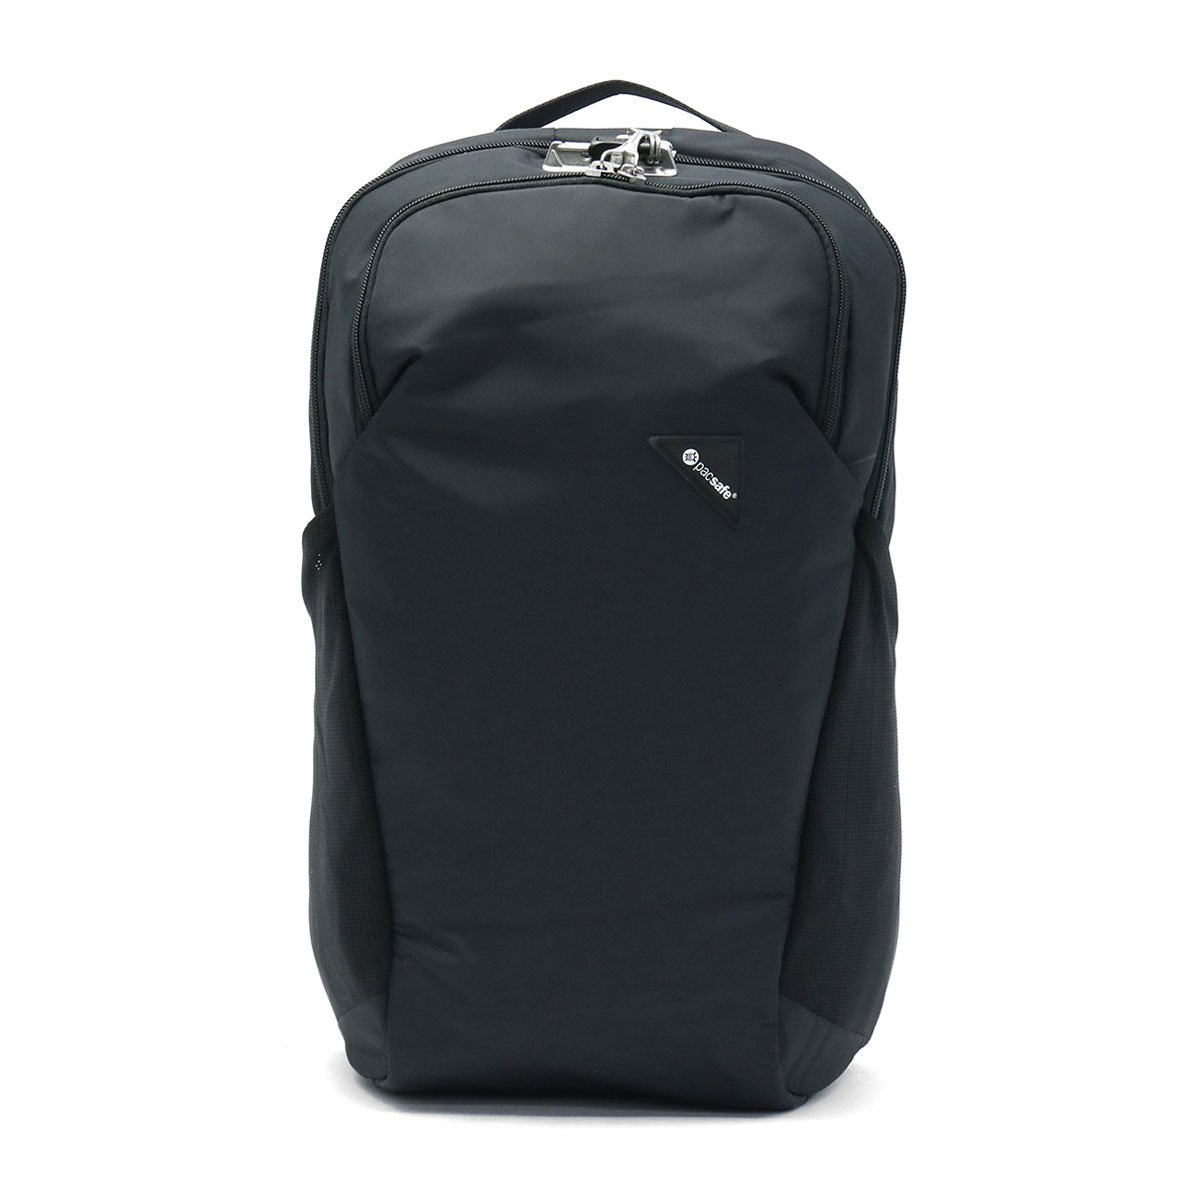 The Pacsafe Vibe 20 Liter Anti Theft Travel Daypack travel product recommended by Nicolette Kay on Lifney.